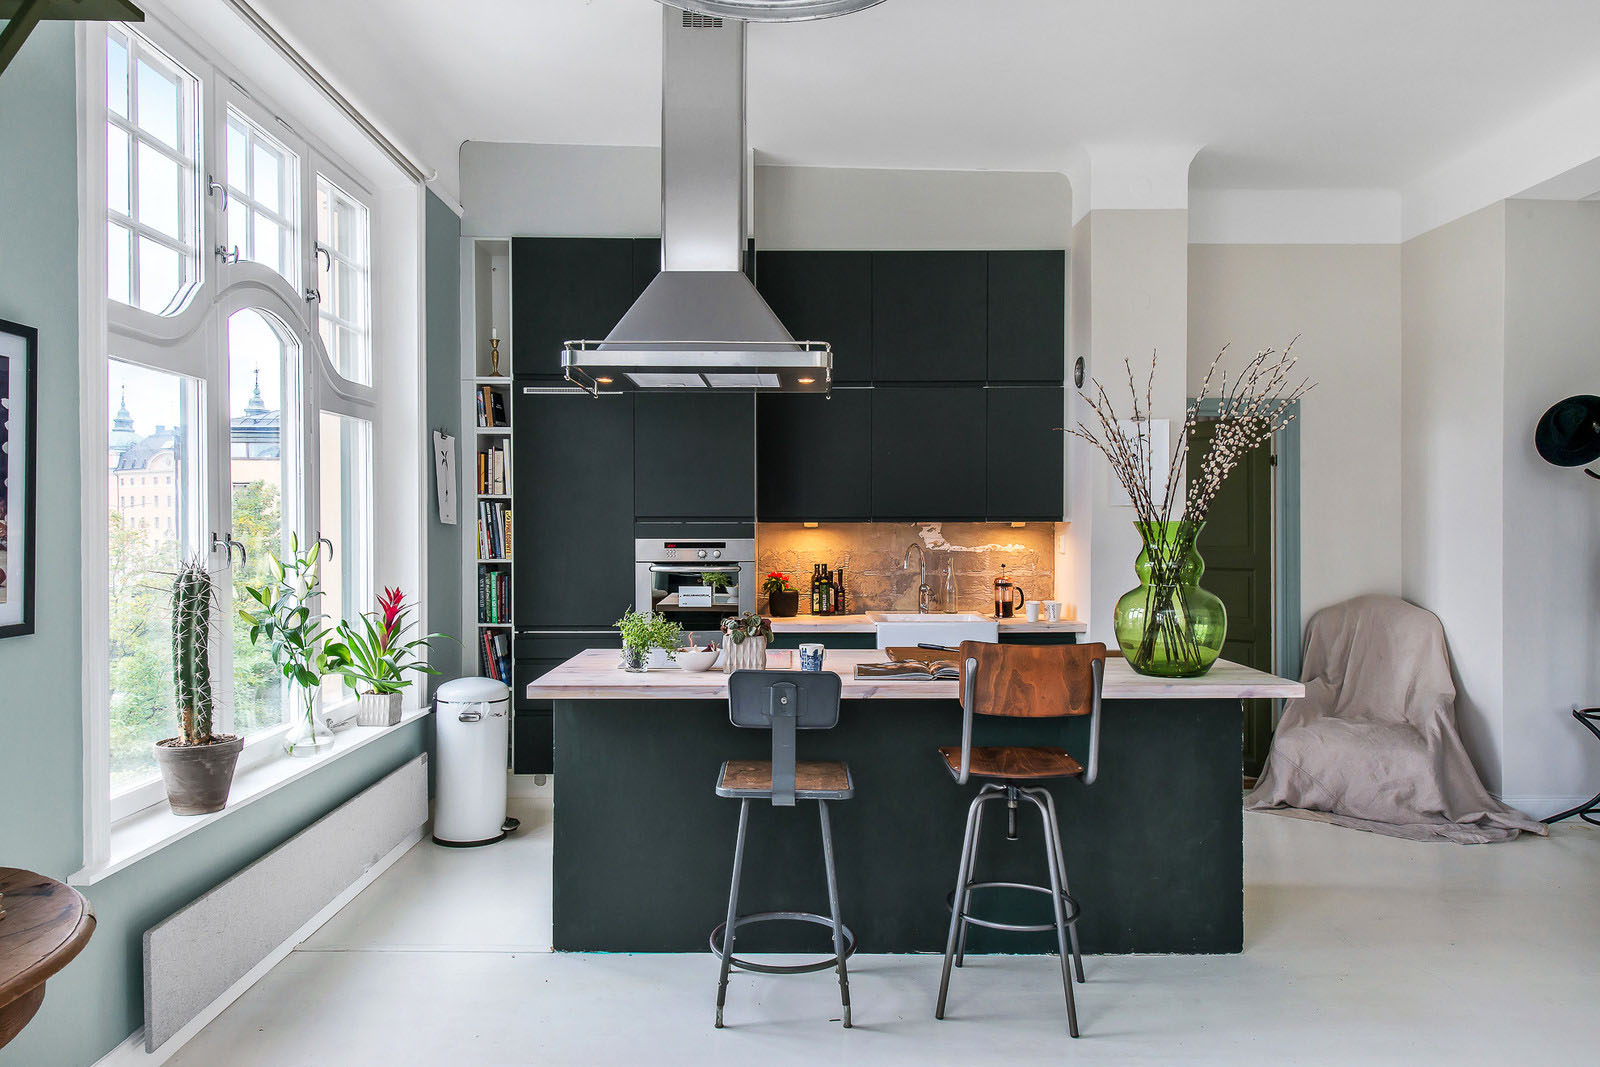 Decor Kitchens And Interiors